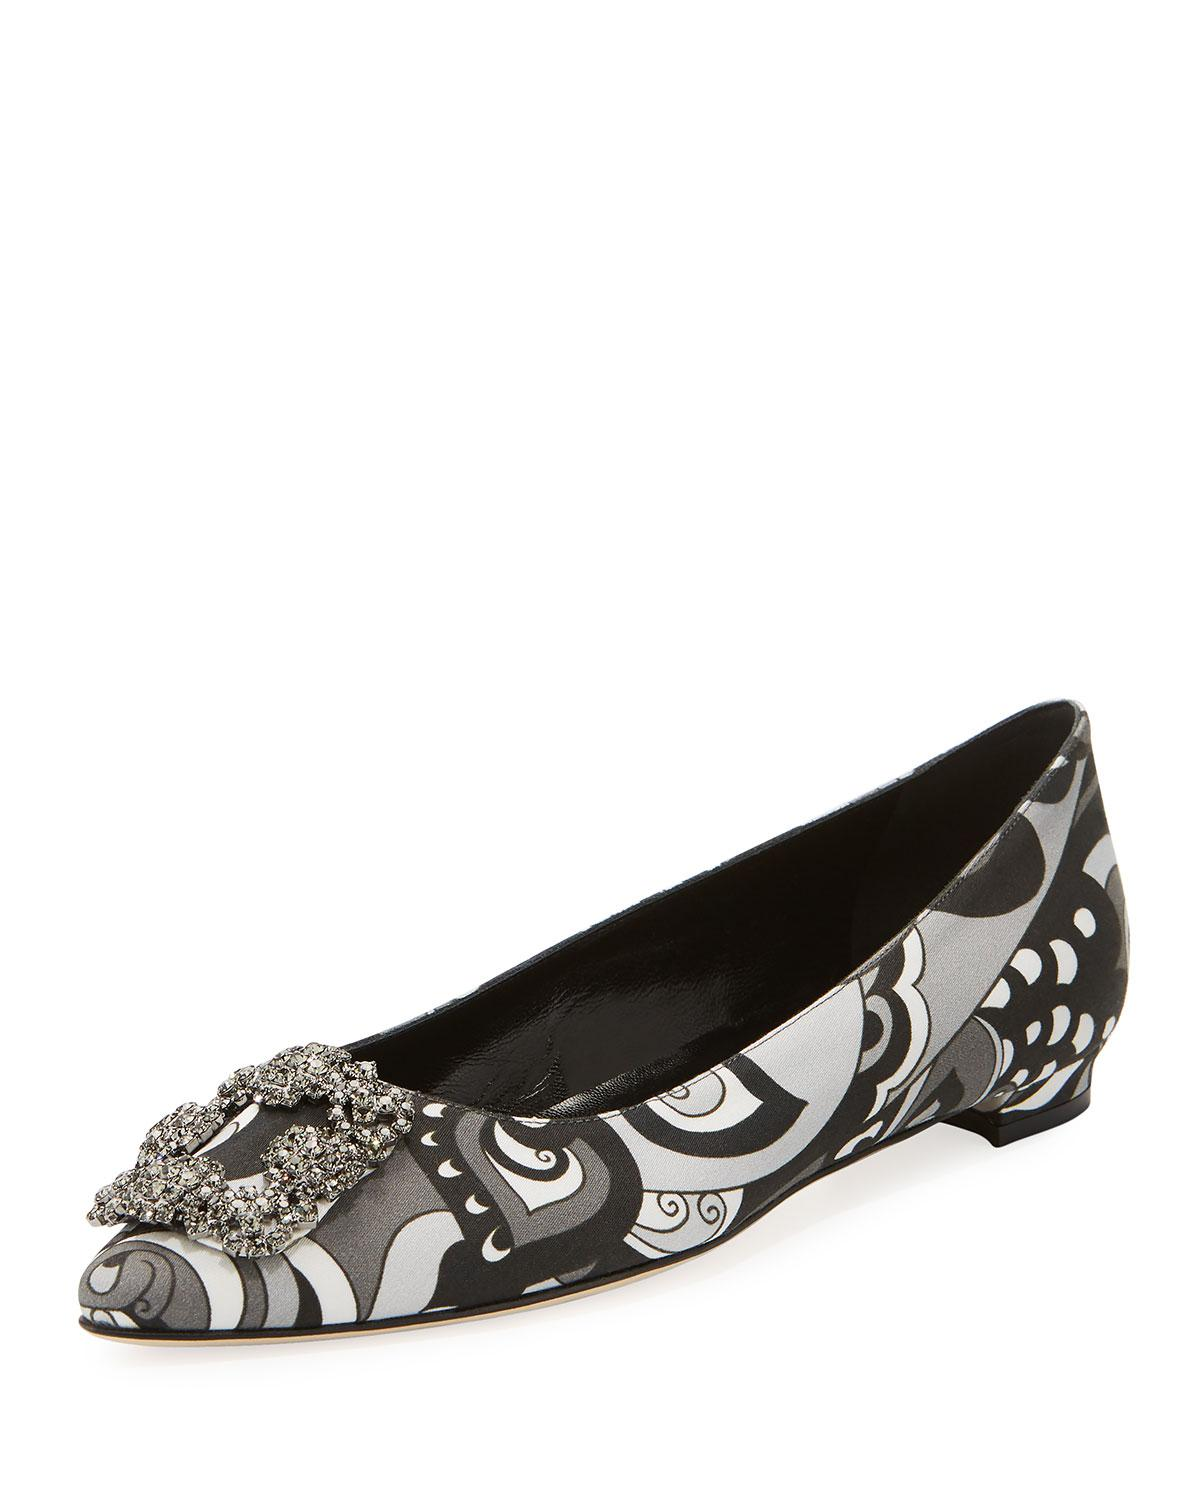 0d784cc49a46 Lyst - Manolo Blahnik Hangisi Crystal-buckle Printed Satin Flat in Pink